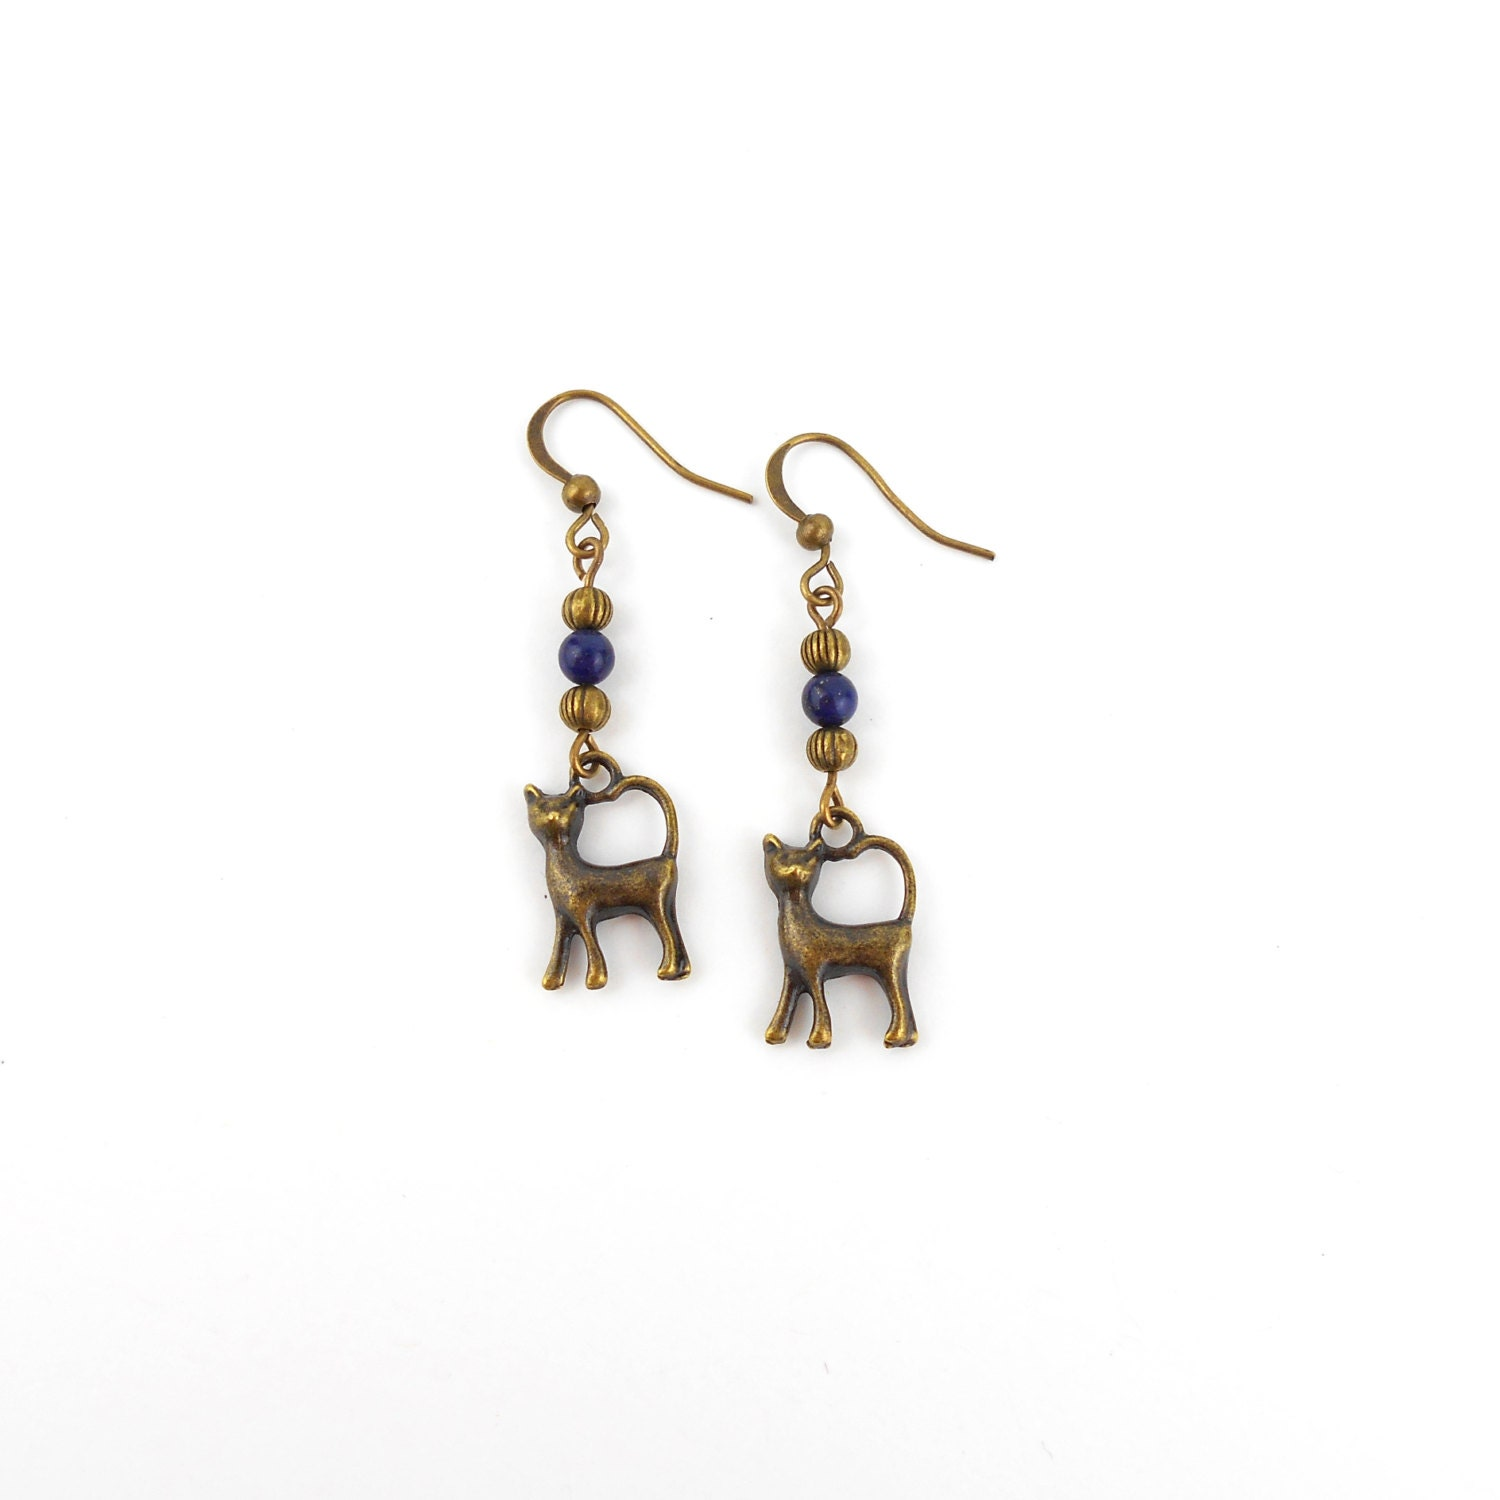 Long Drop Cat Earrings with Lapis Lazuli gemstones in Antique Bronze Perfect gift for a cat lover